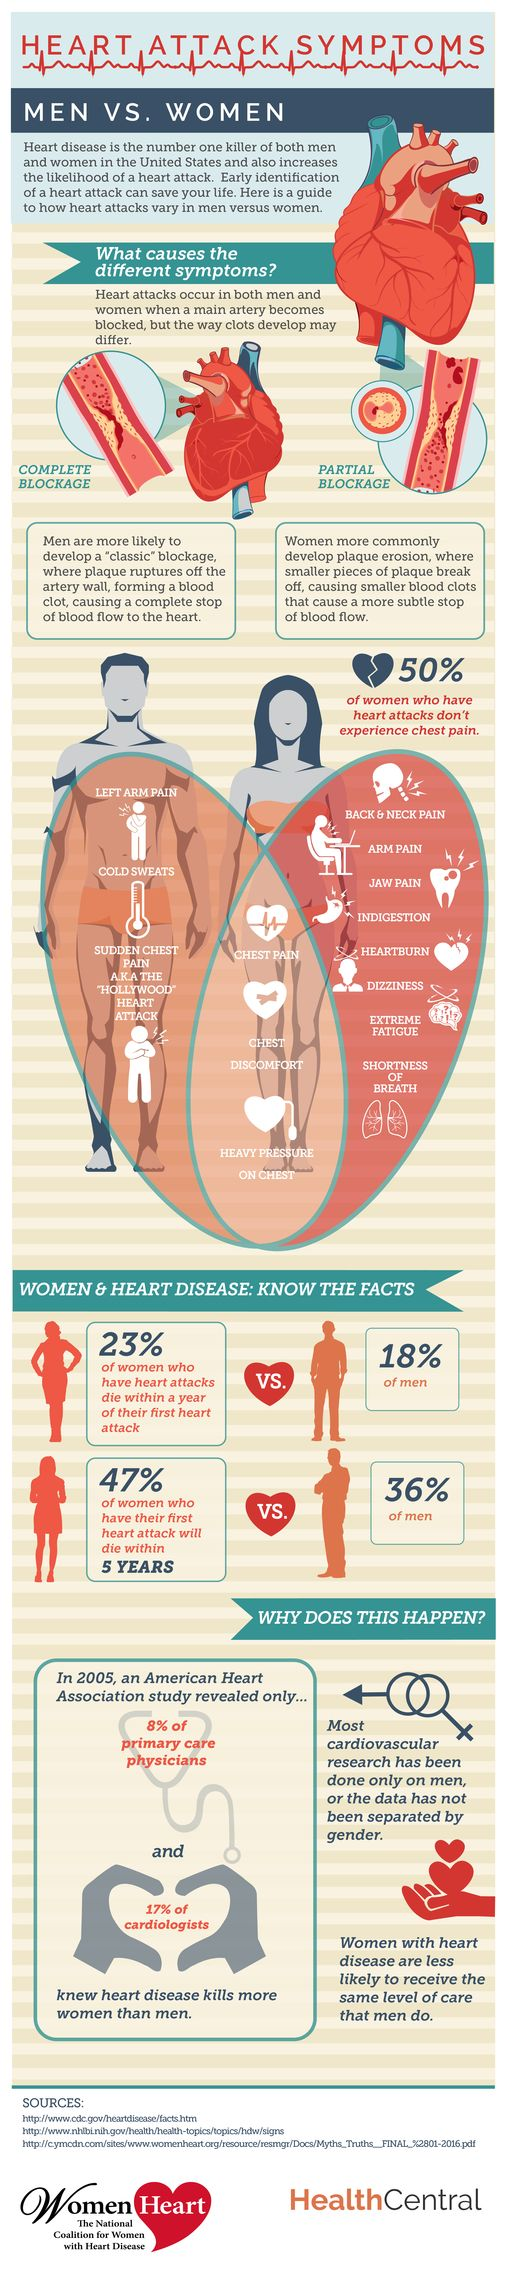 Heart Attack Symptoms: Men vs. Women - Heart Attack - Heart Disease